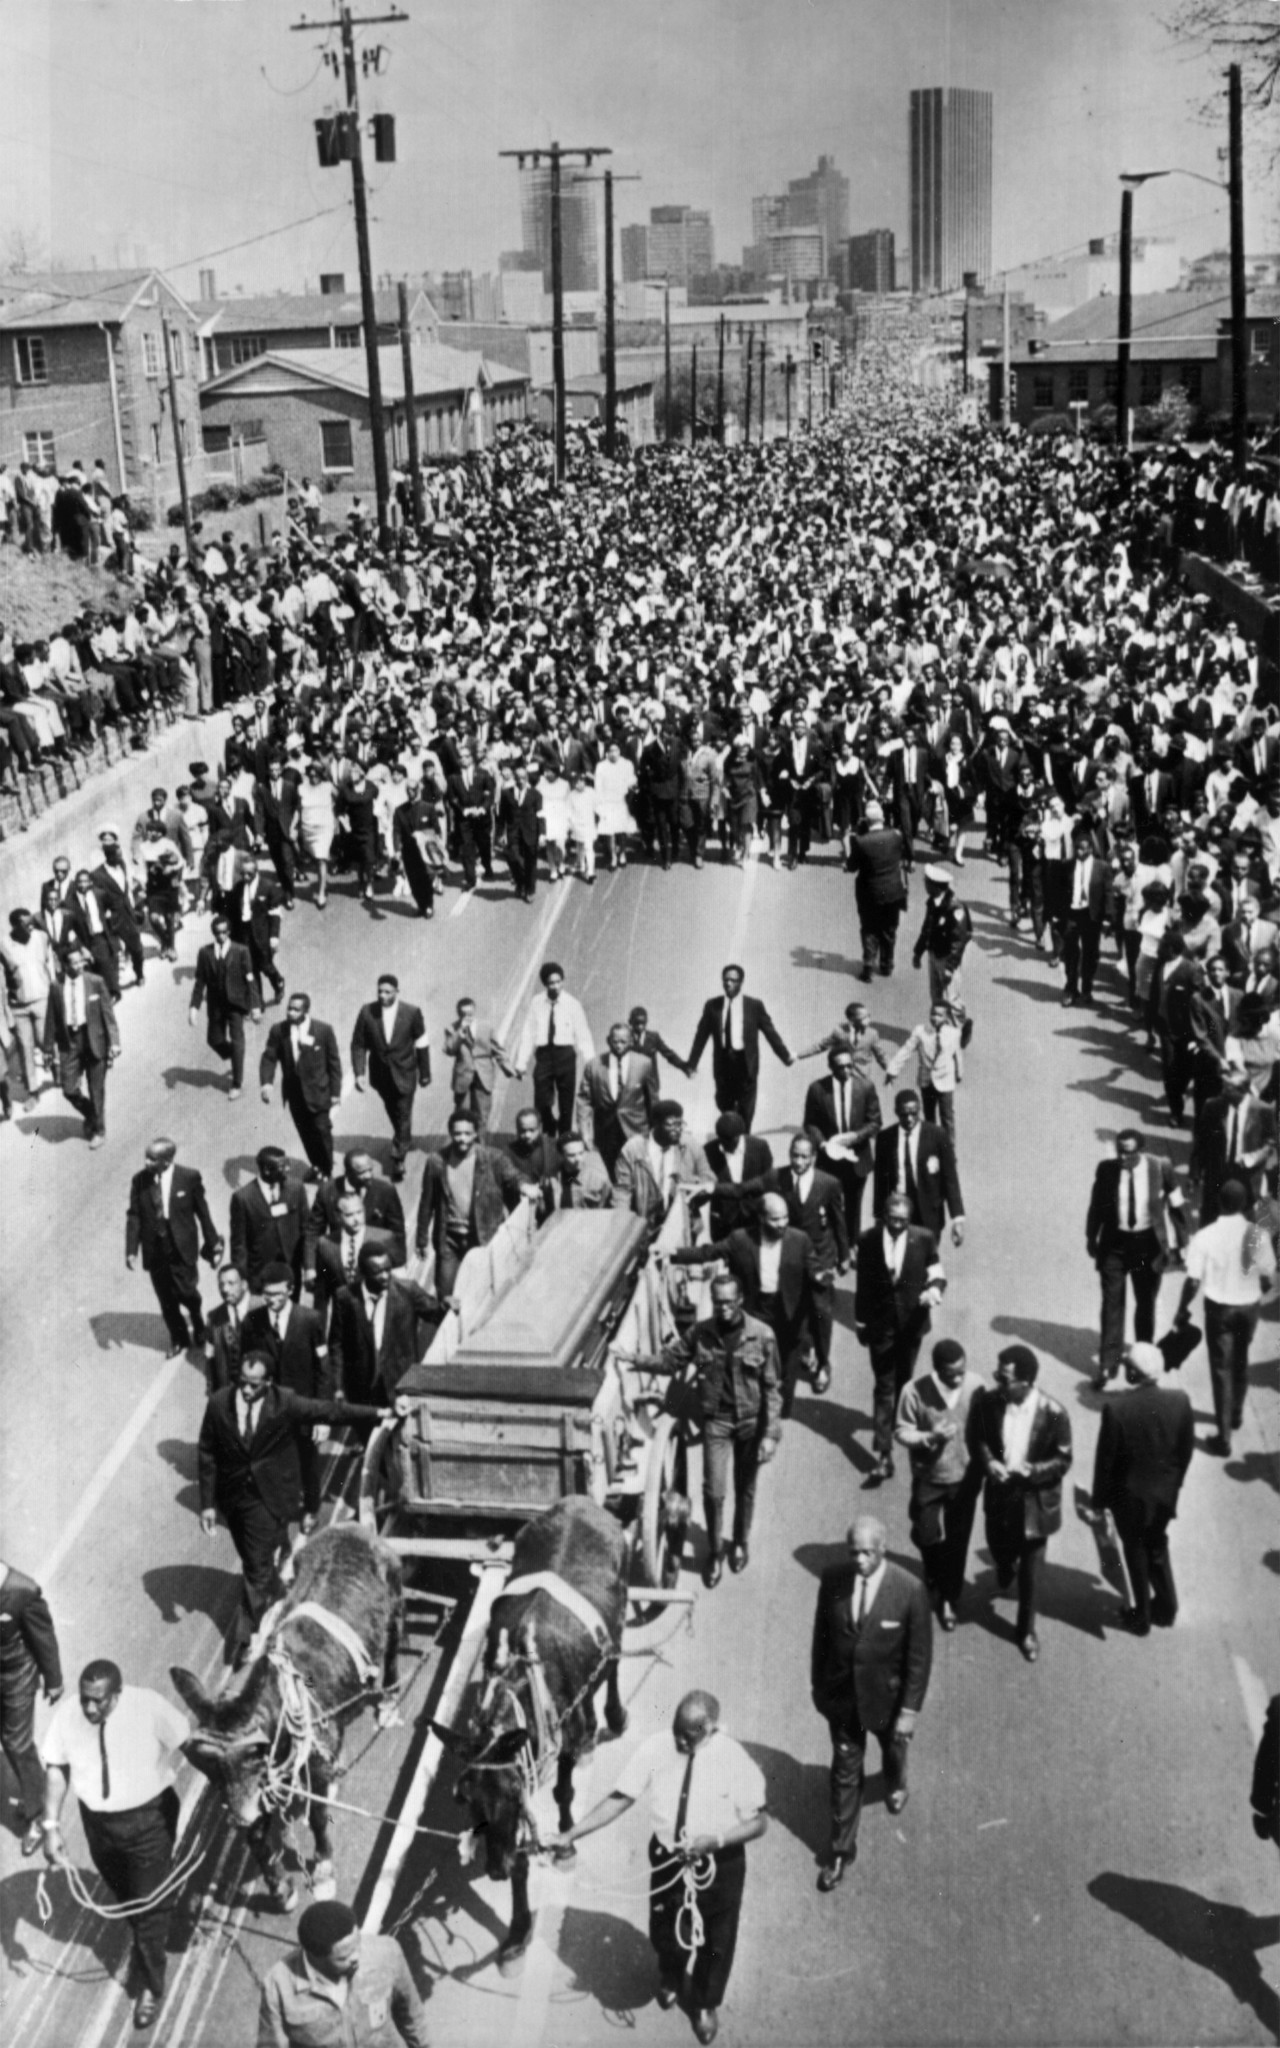 Funeral procession for Dr. Martin Luther King through the streets of Atlanta